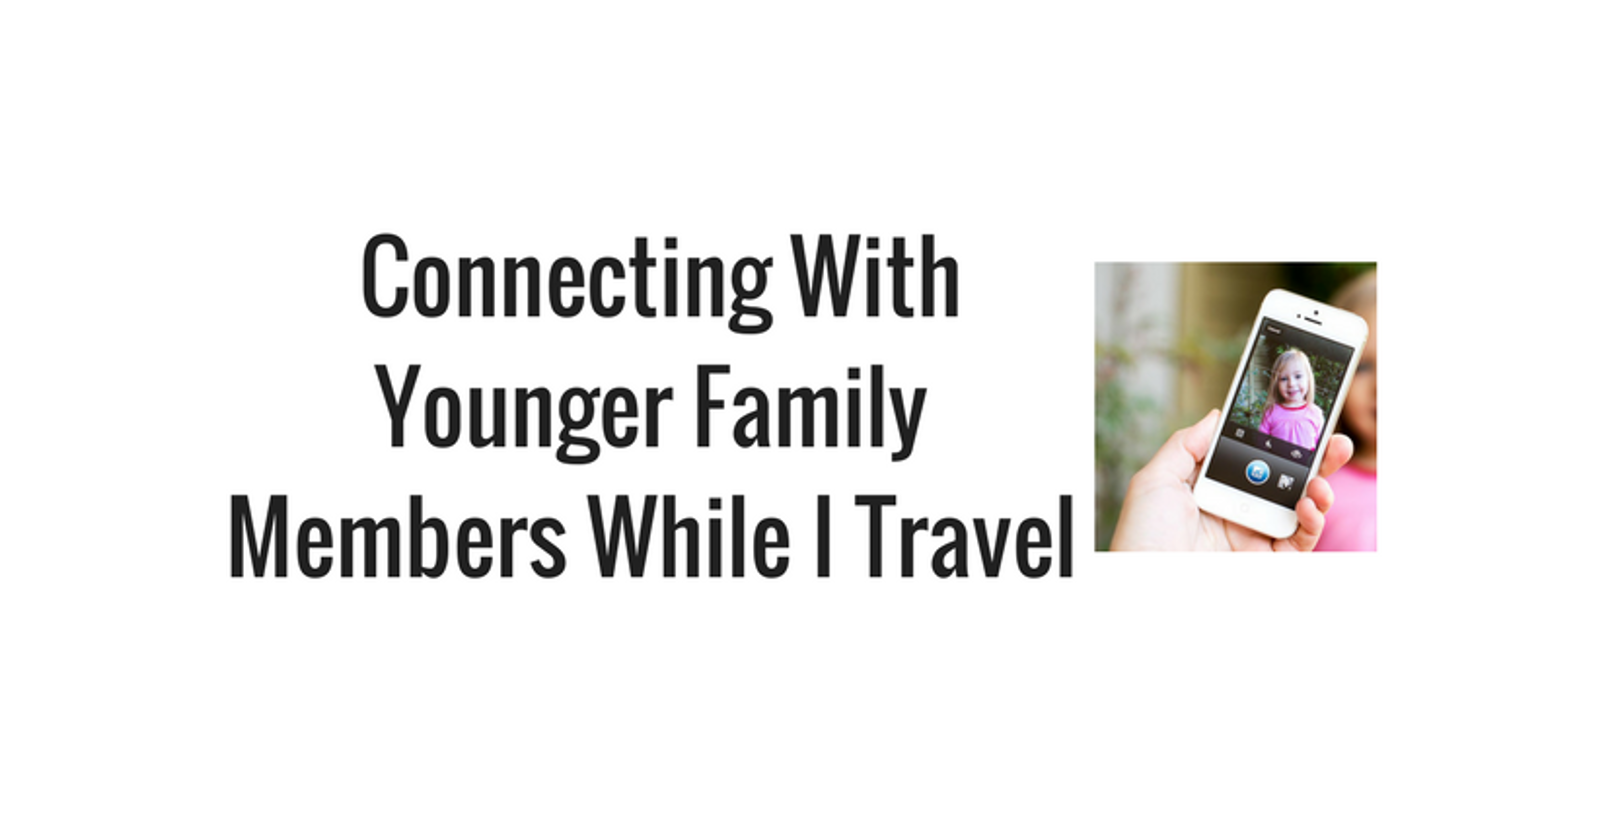 How Can I Stay Connected to Younger Family Members While I Travel?